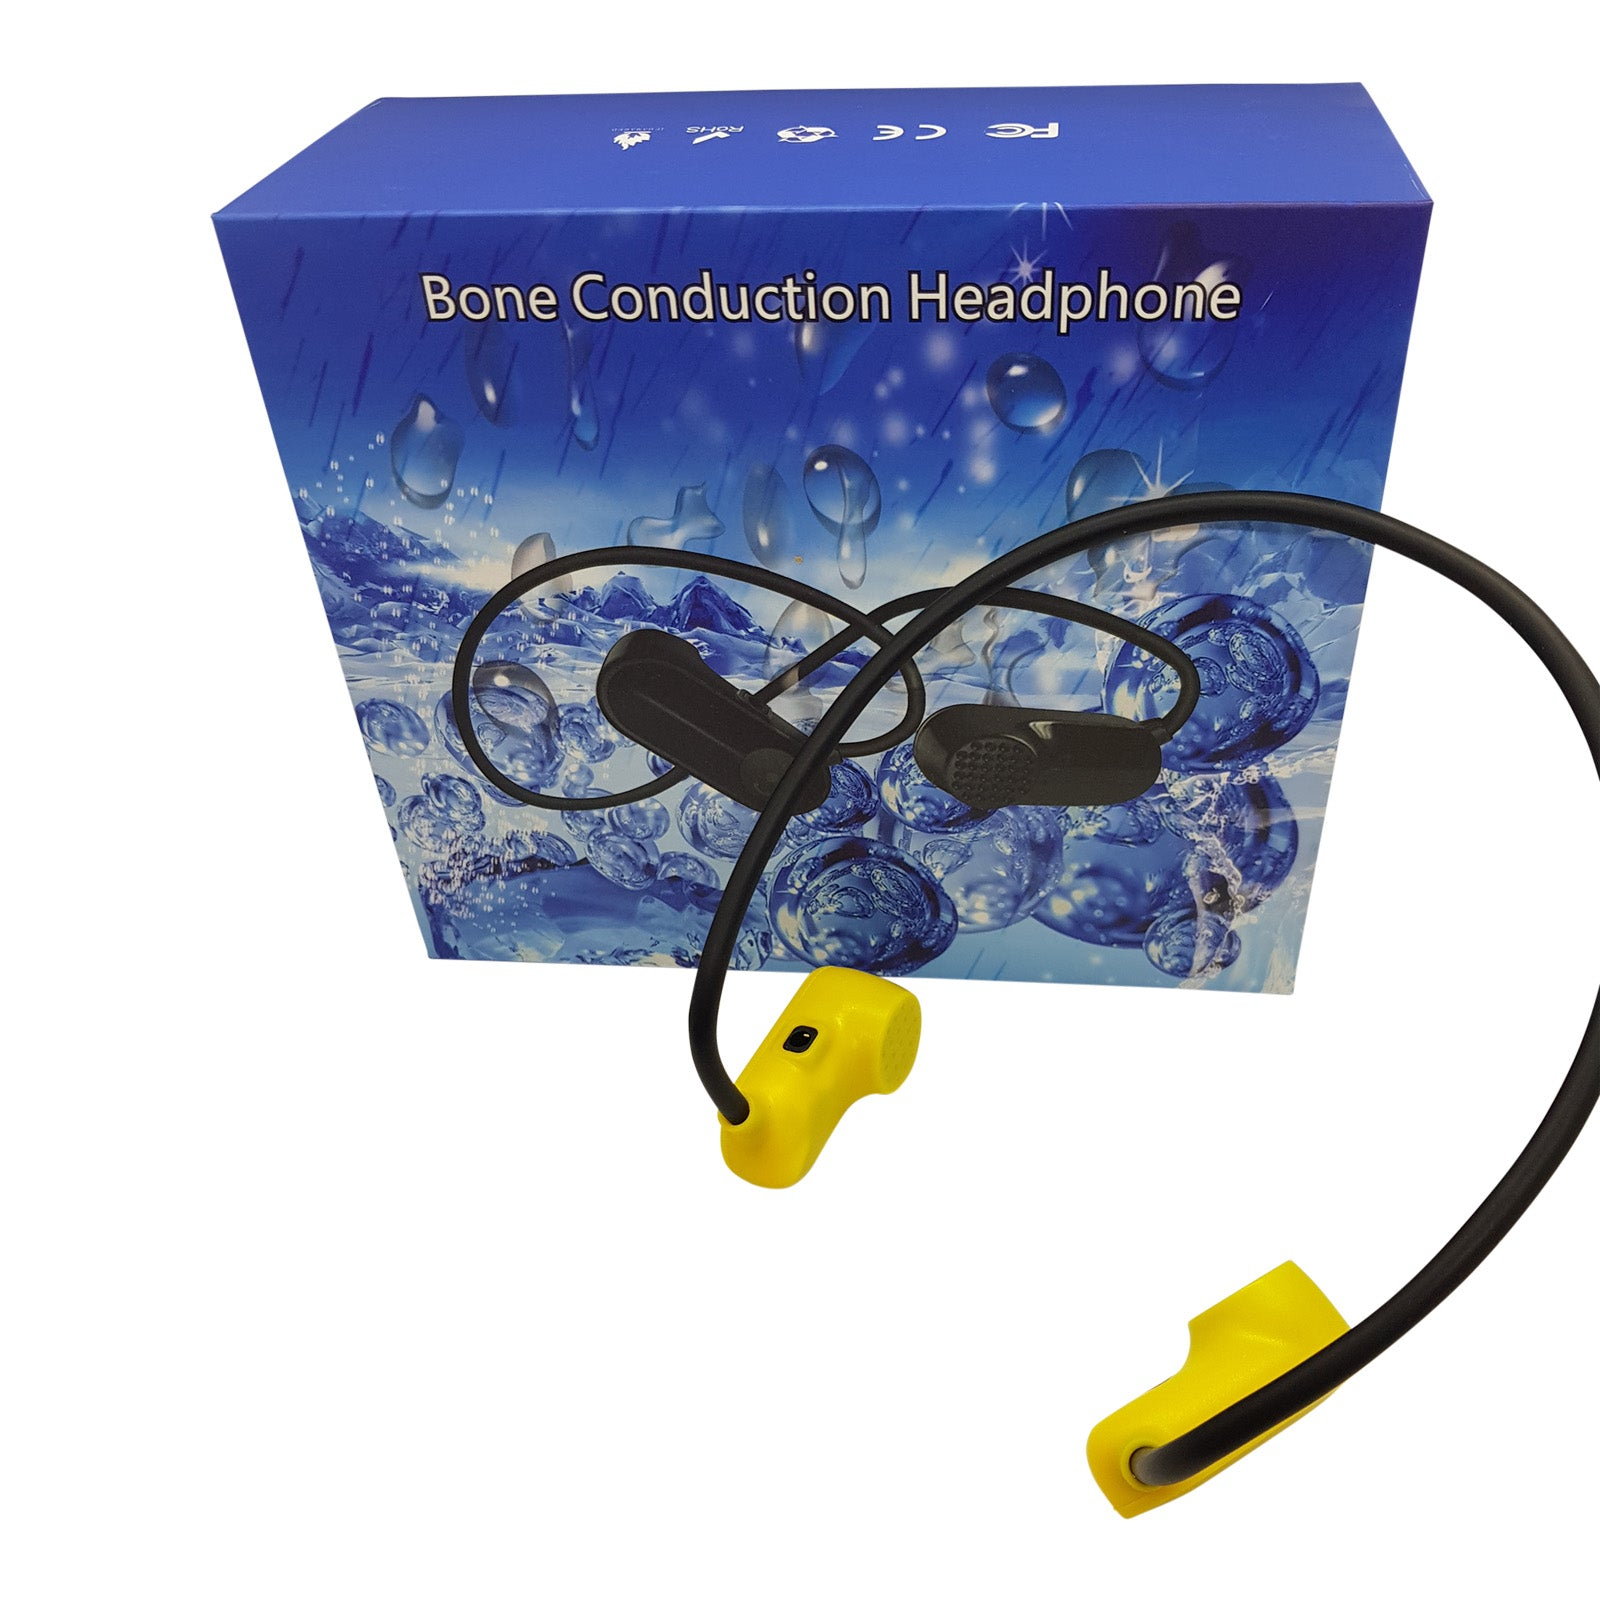 MP3 Bone Conduction Headphones Waterproof with 8GB Memory V13